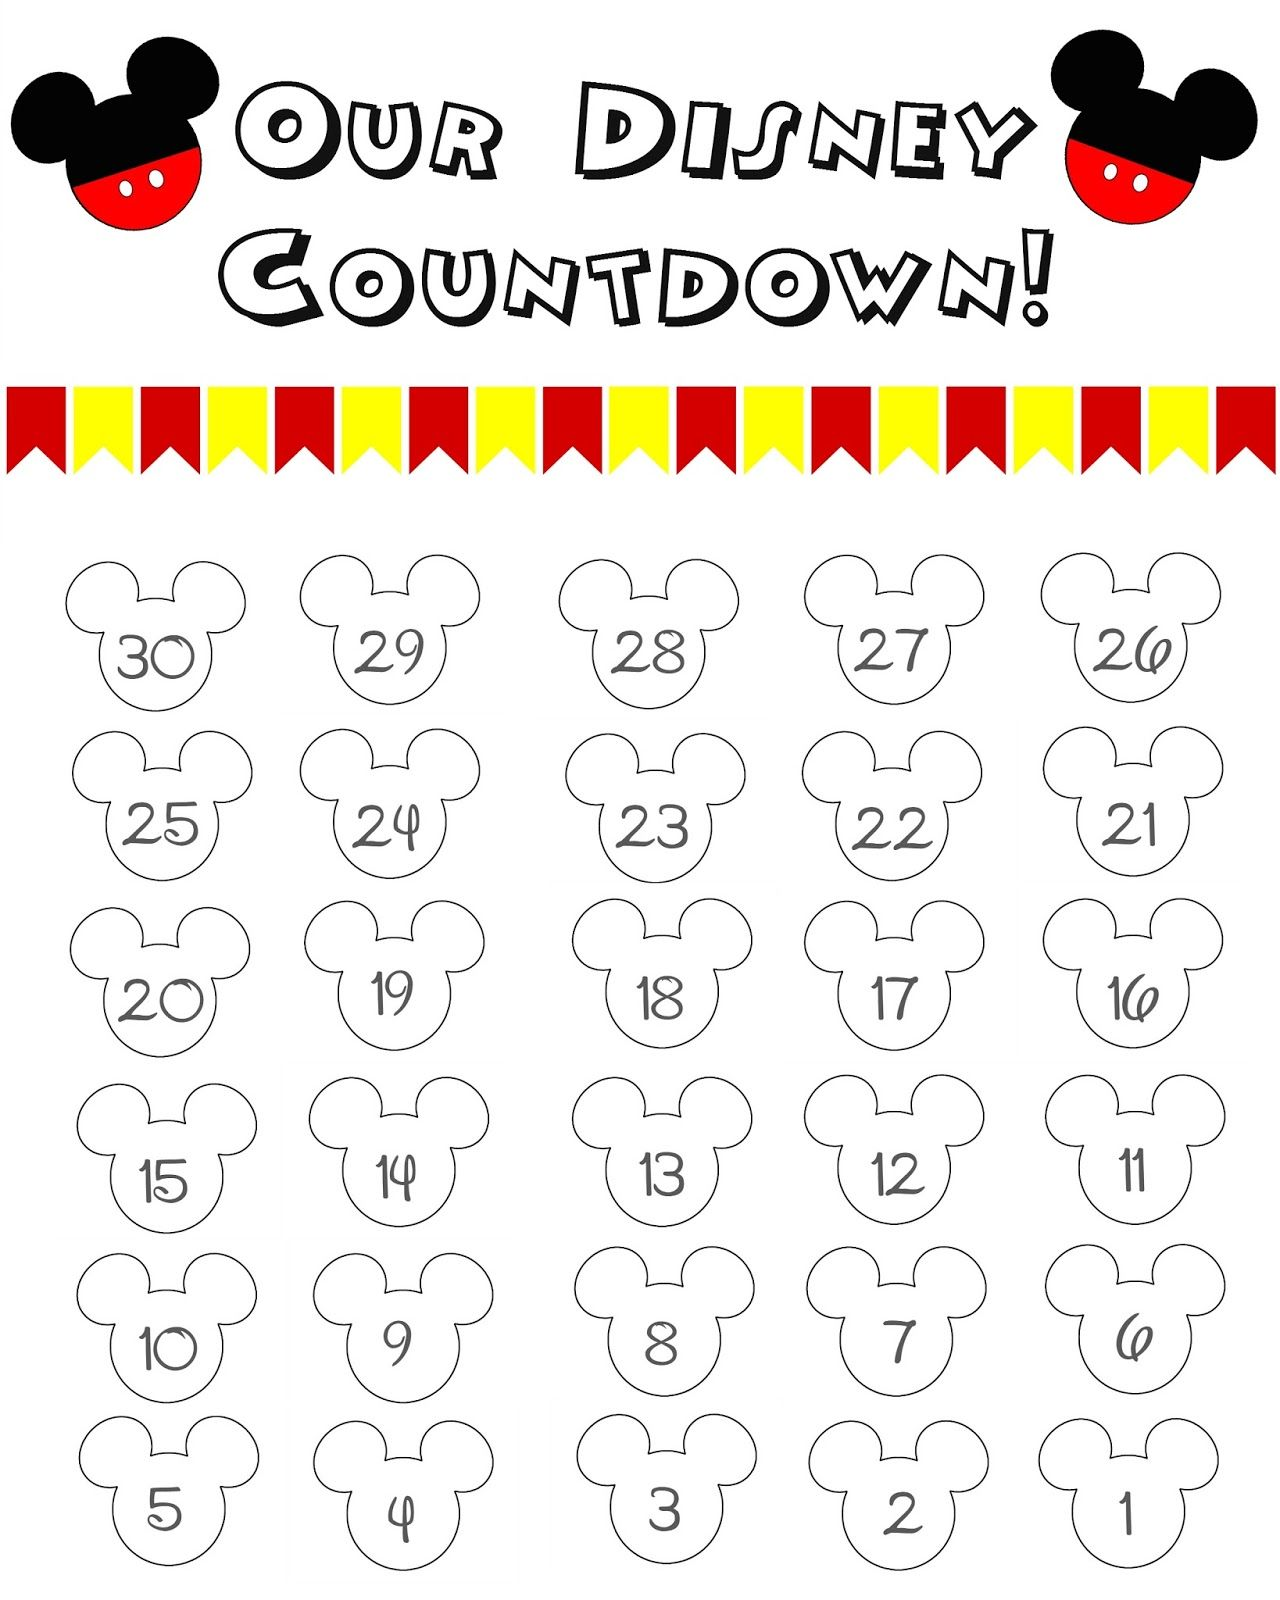 Disney World Countdown Calendar Free Printable Disney